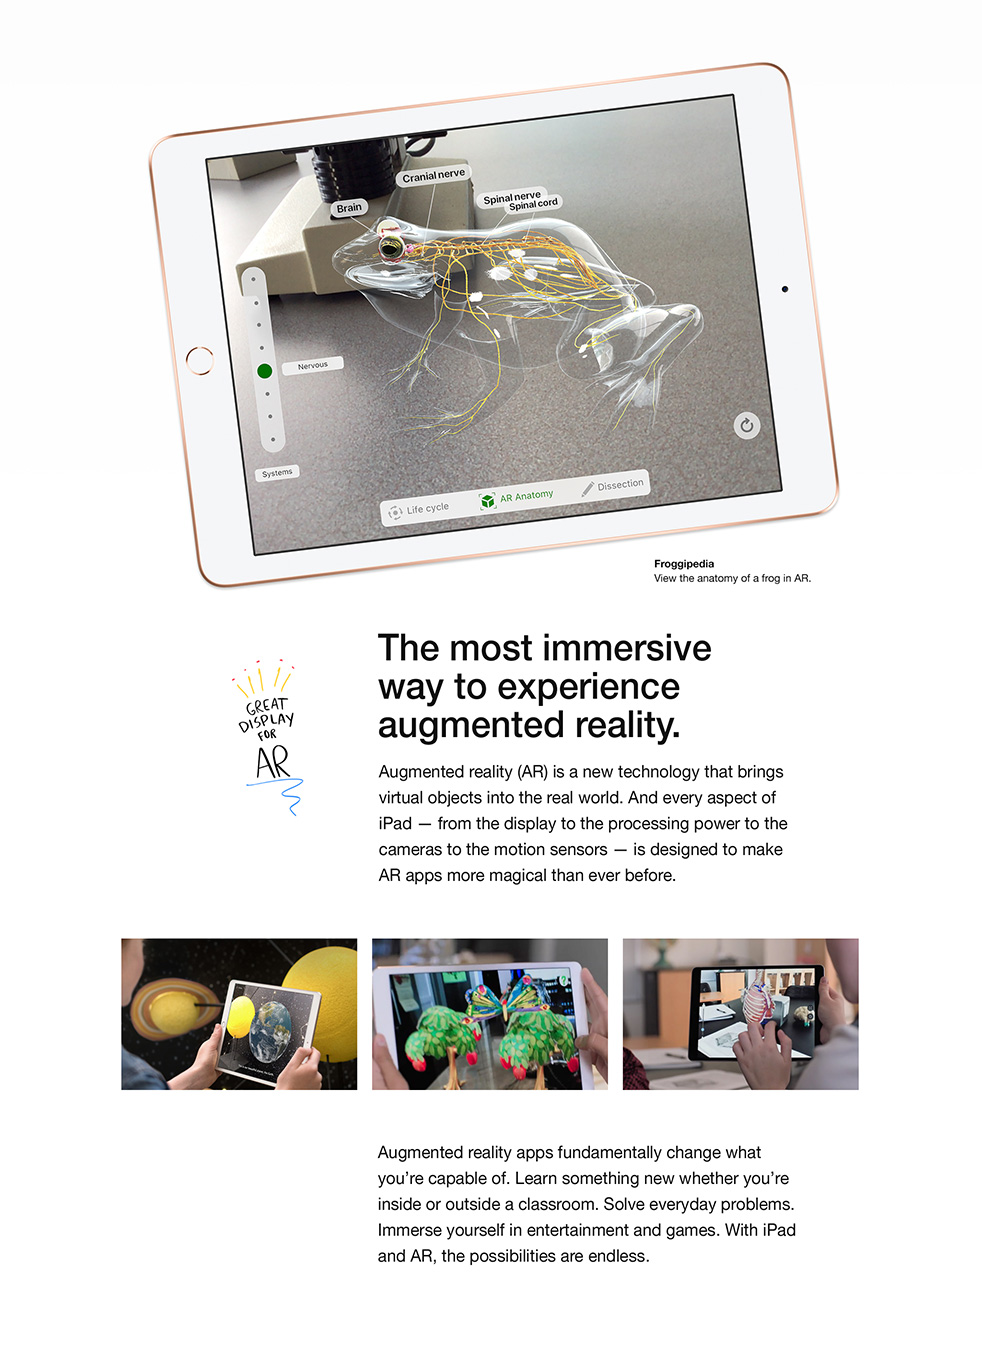 iPad - The most immersive way to experience augmented reality.